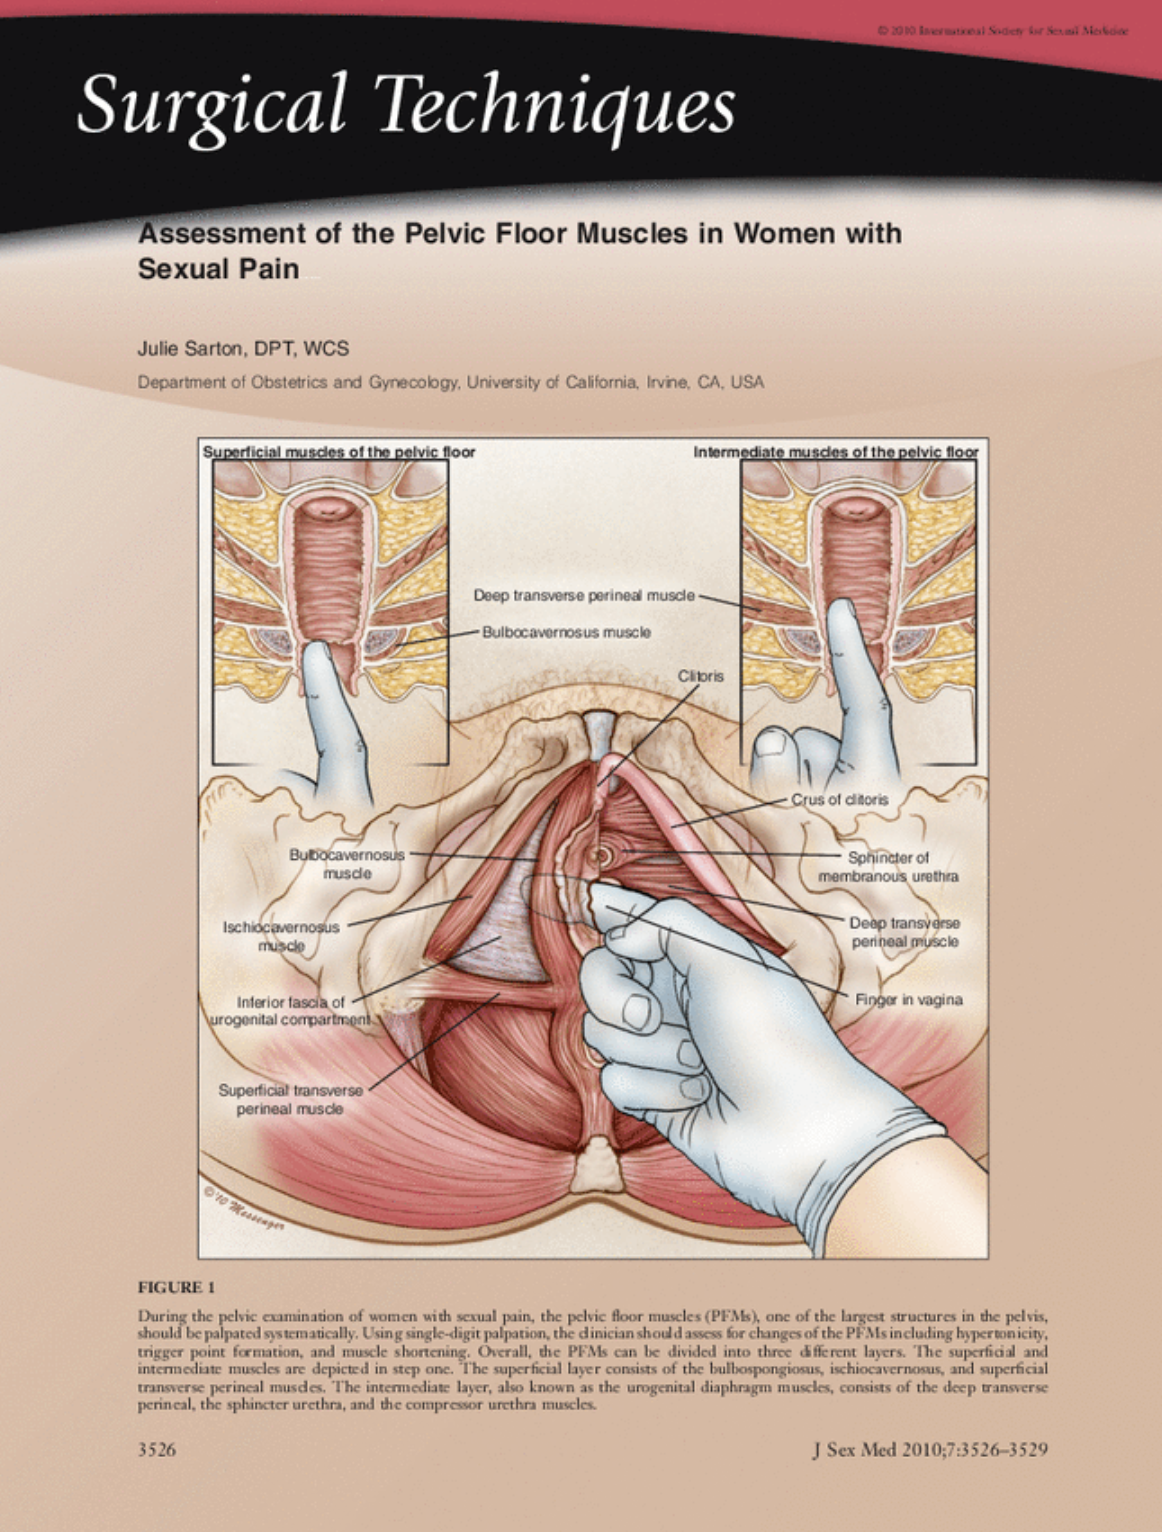 Figure 1  During the pelvic examination of women with sexual pain, the pelvic floor muscles (PFMs), one of the largest structures in the pelvis, should be palpated systematically. Using single-digit palpation, the clinician should assess for changes of the PFMs including hypertonicity, trigger point formation, and muscle shortening. Overall, the PFMs can be divided into 3 different layers. The superficial and intermediate muscles are depicted in step one. The superficial later consists of the bulbospongiosus, ischiocavernosus, and superficial transverse perineal muscles. The intermediate layer, also knows as the urogenital diaphragm muscles, consists of the deep transverse perineal, the sphincter urethra, and the compressor urethra muscles.